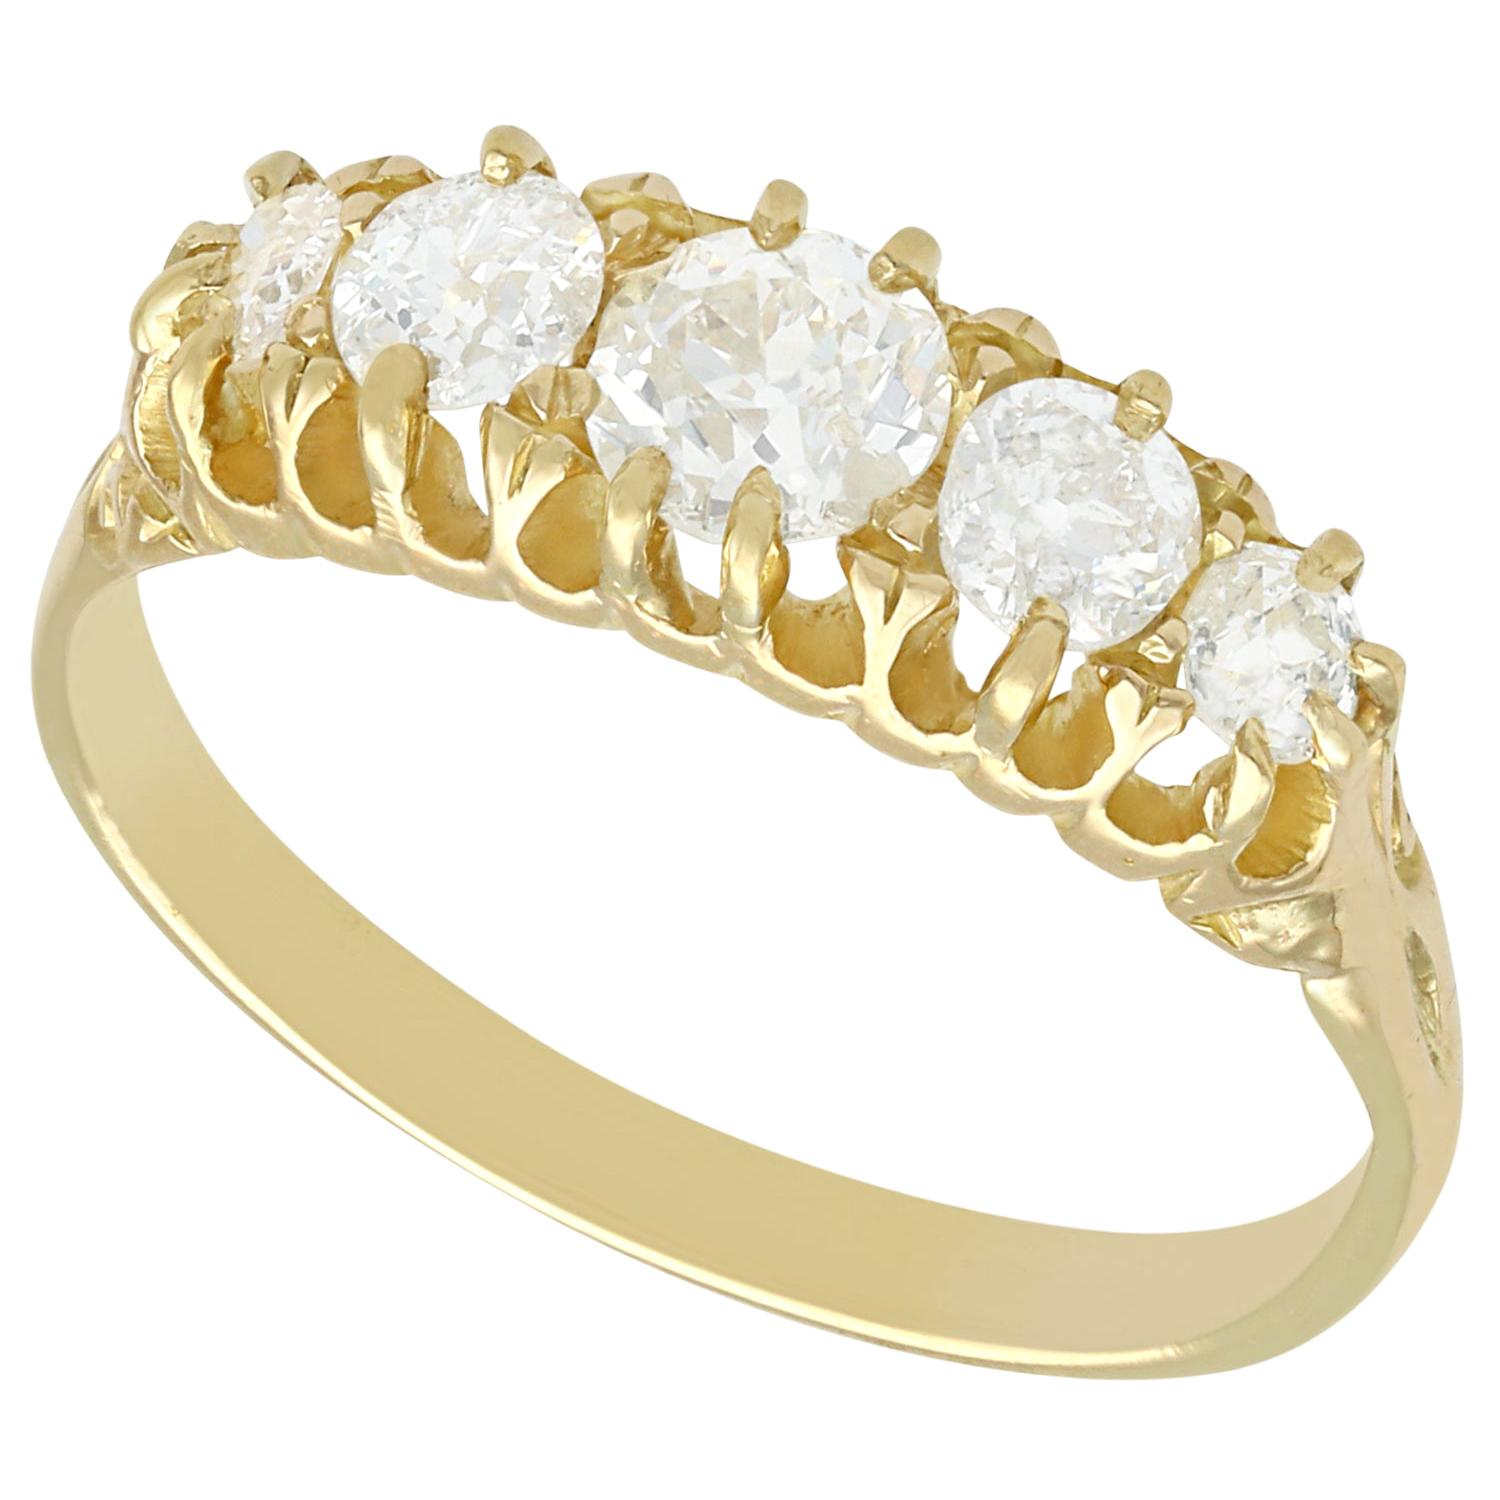 1910s Antique Diamond and Yellow Gold Five-Stone Ring